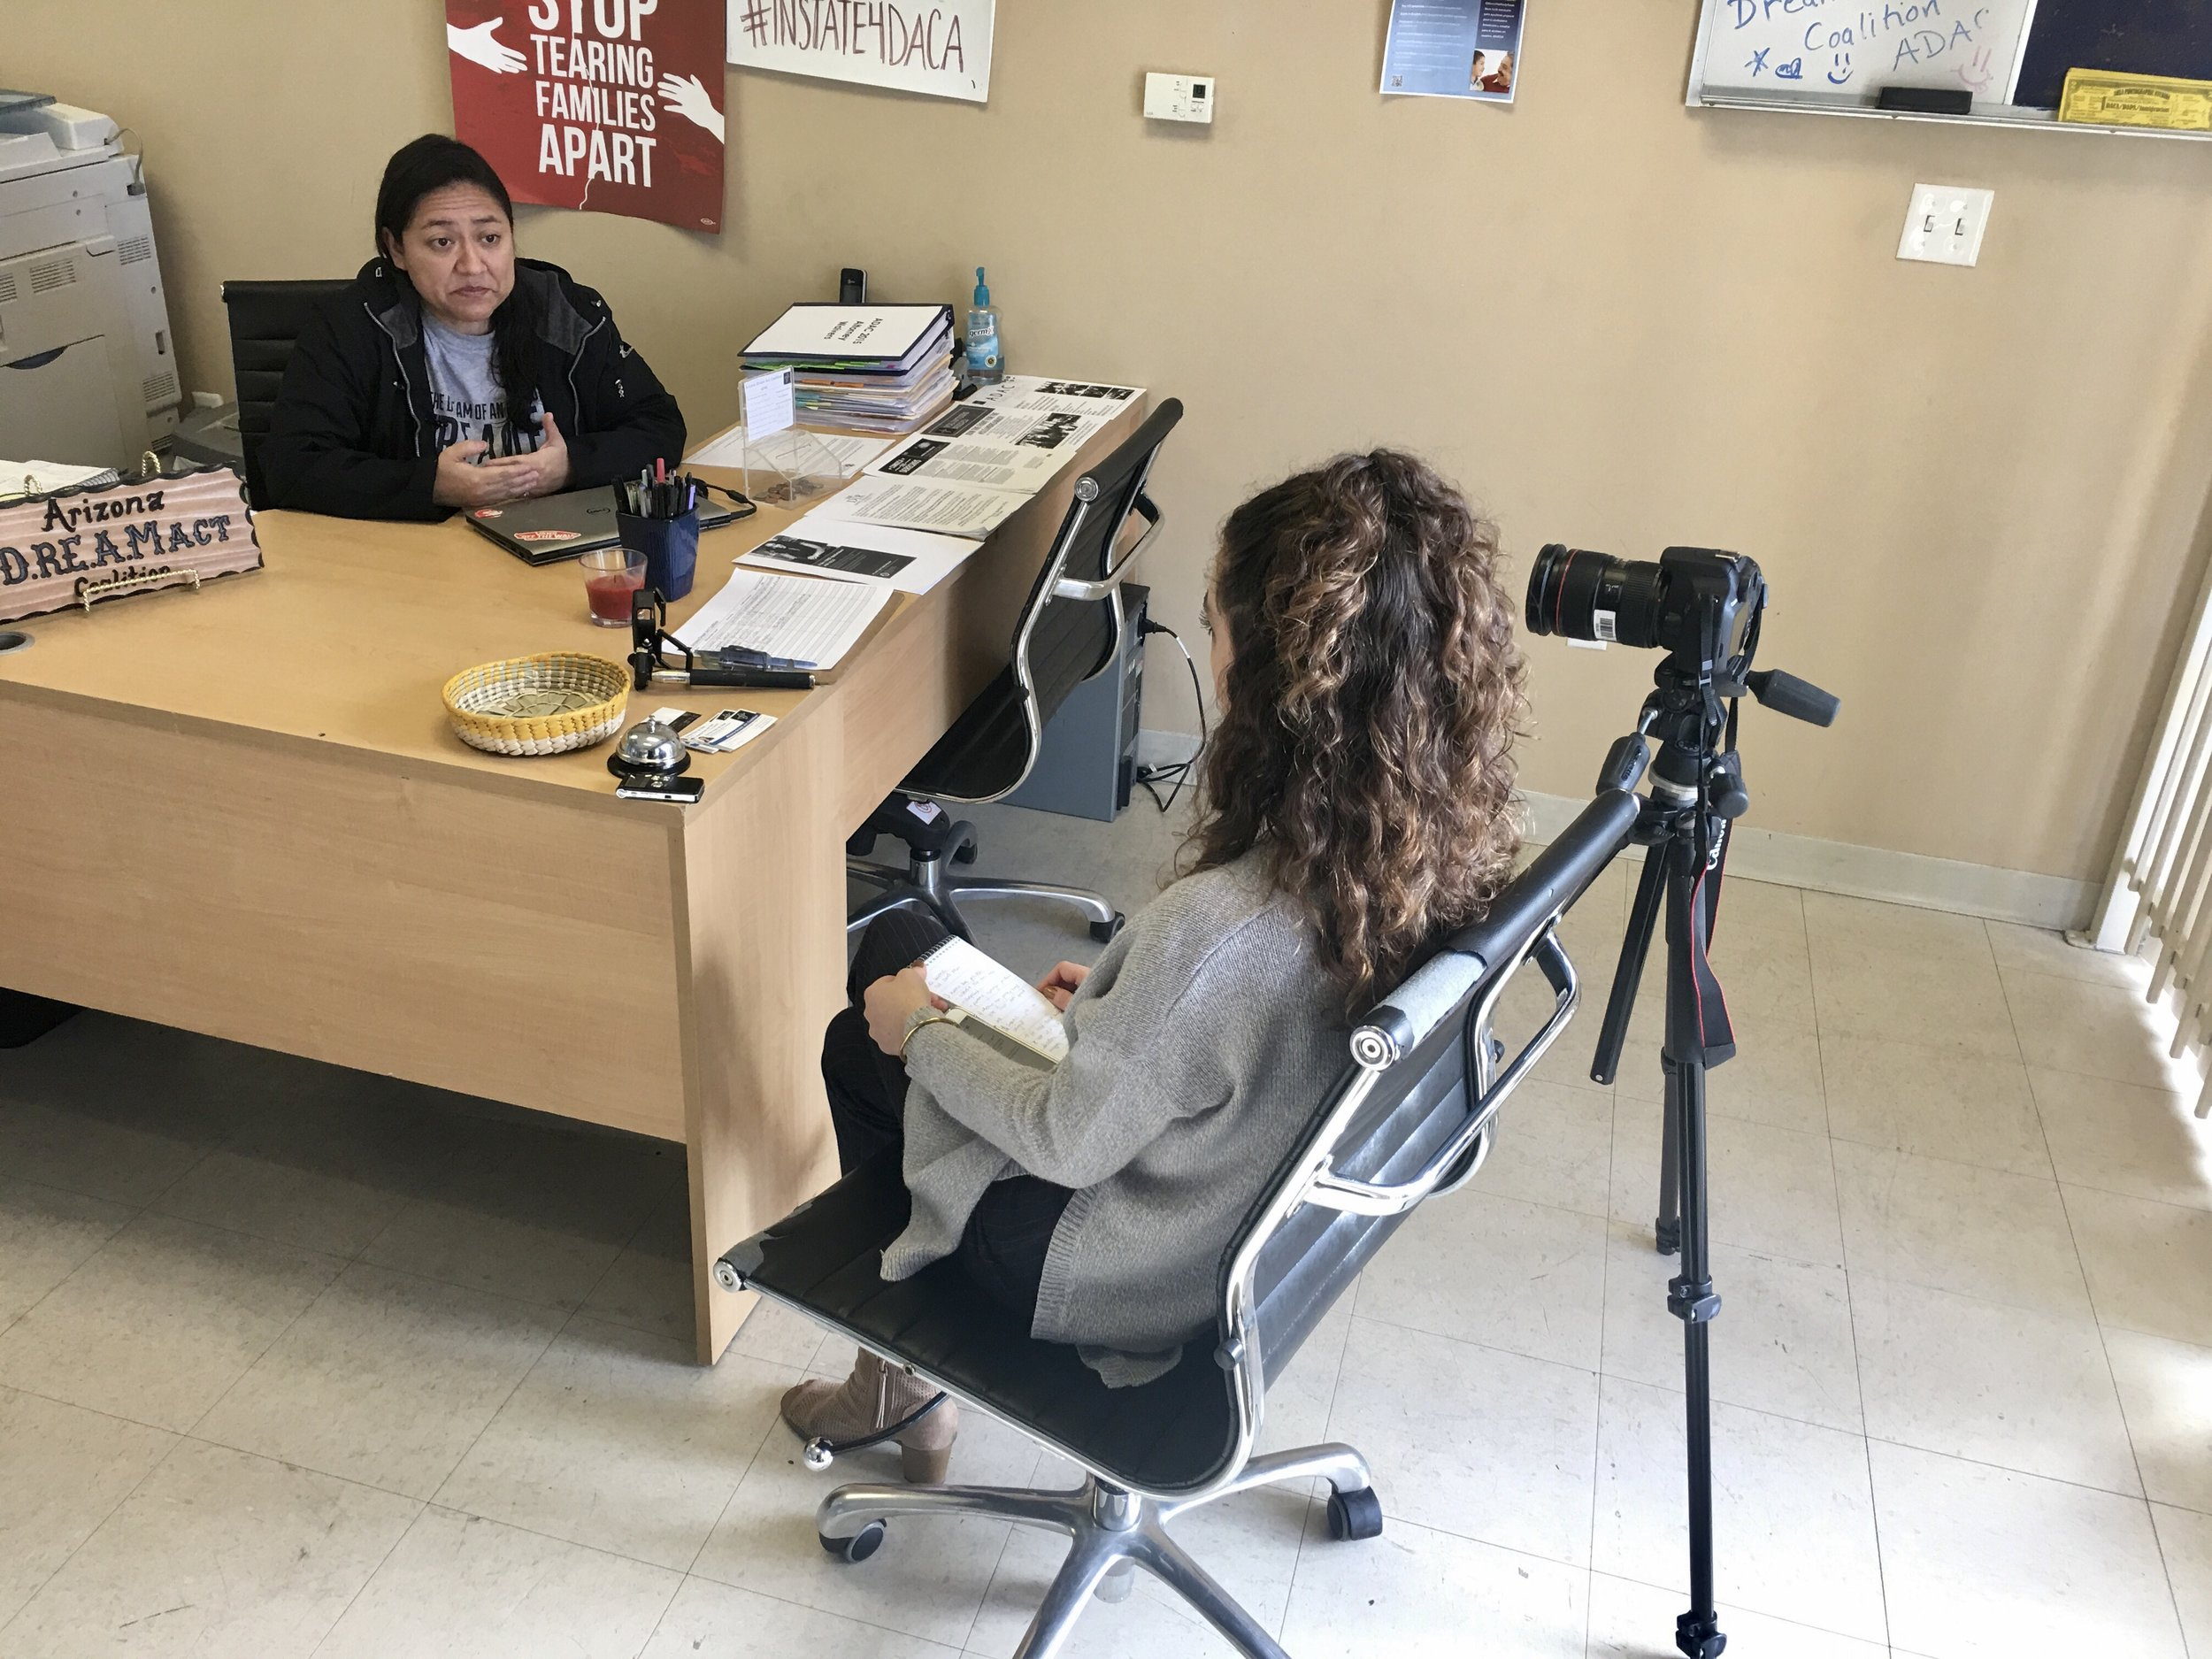 Interviewing Karina Ruiz, president of the Arizona Dream Act Coalition, about breaking DACA news on assignment for Cronkite News. (Photo by Lillian Donahue)